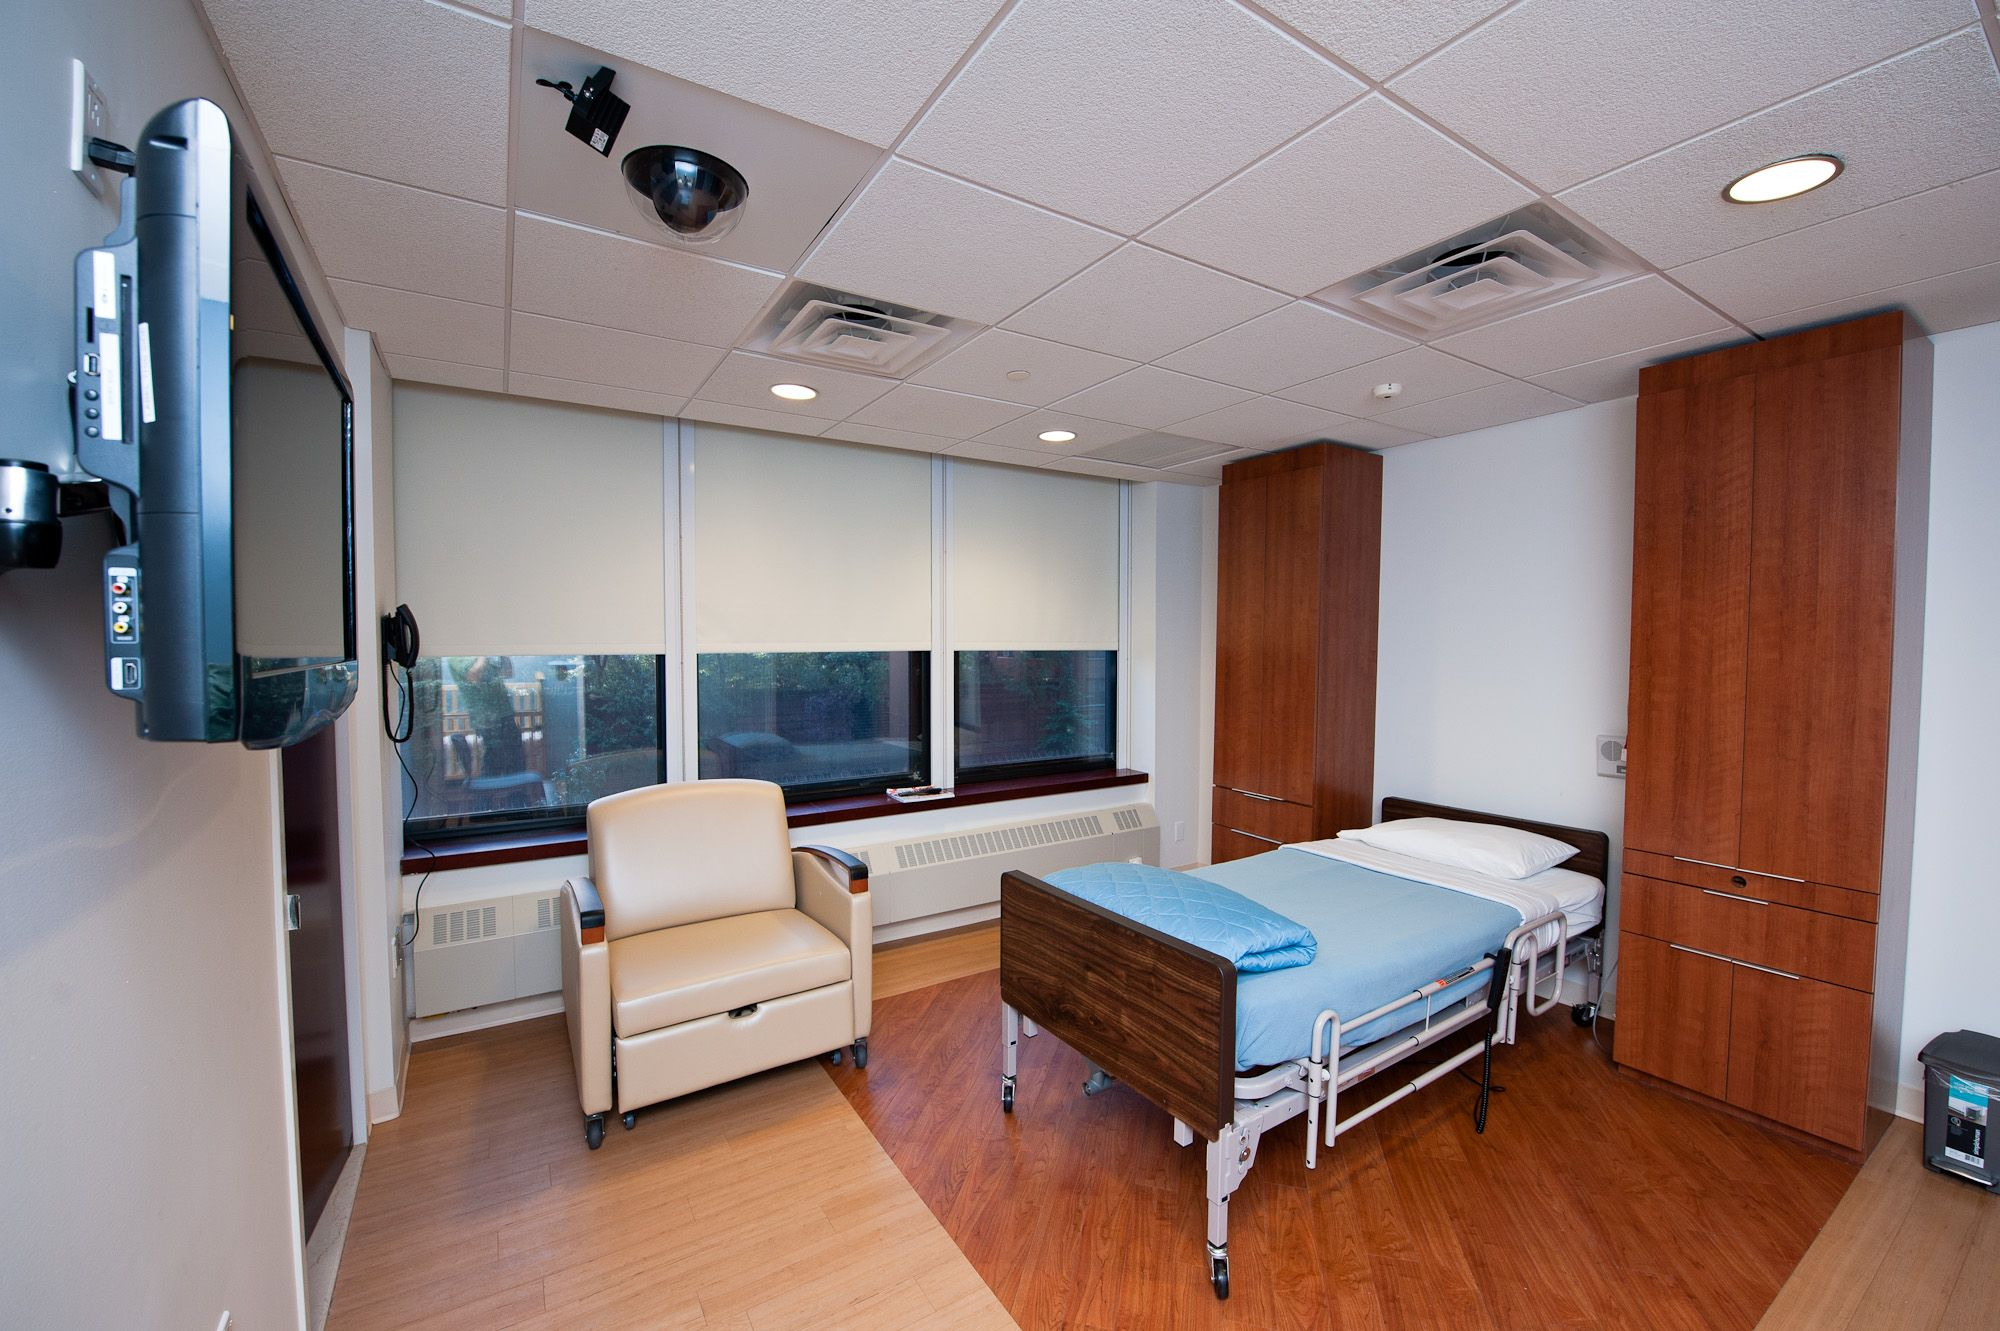 Bedroom at the Weill Cornell Pediatric Sleep Center